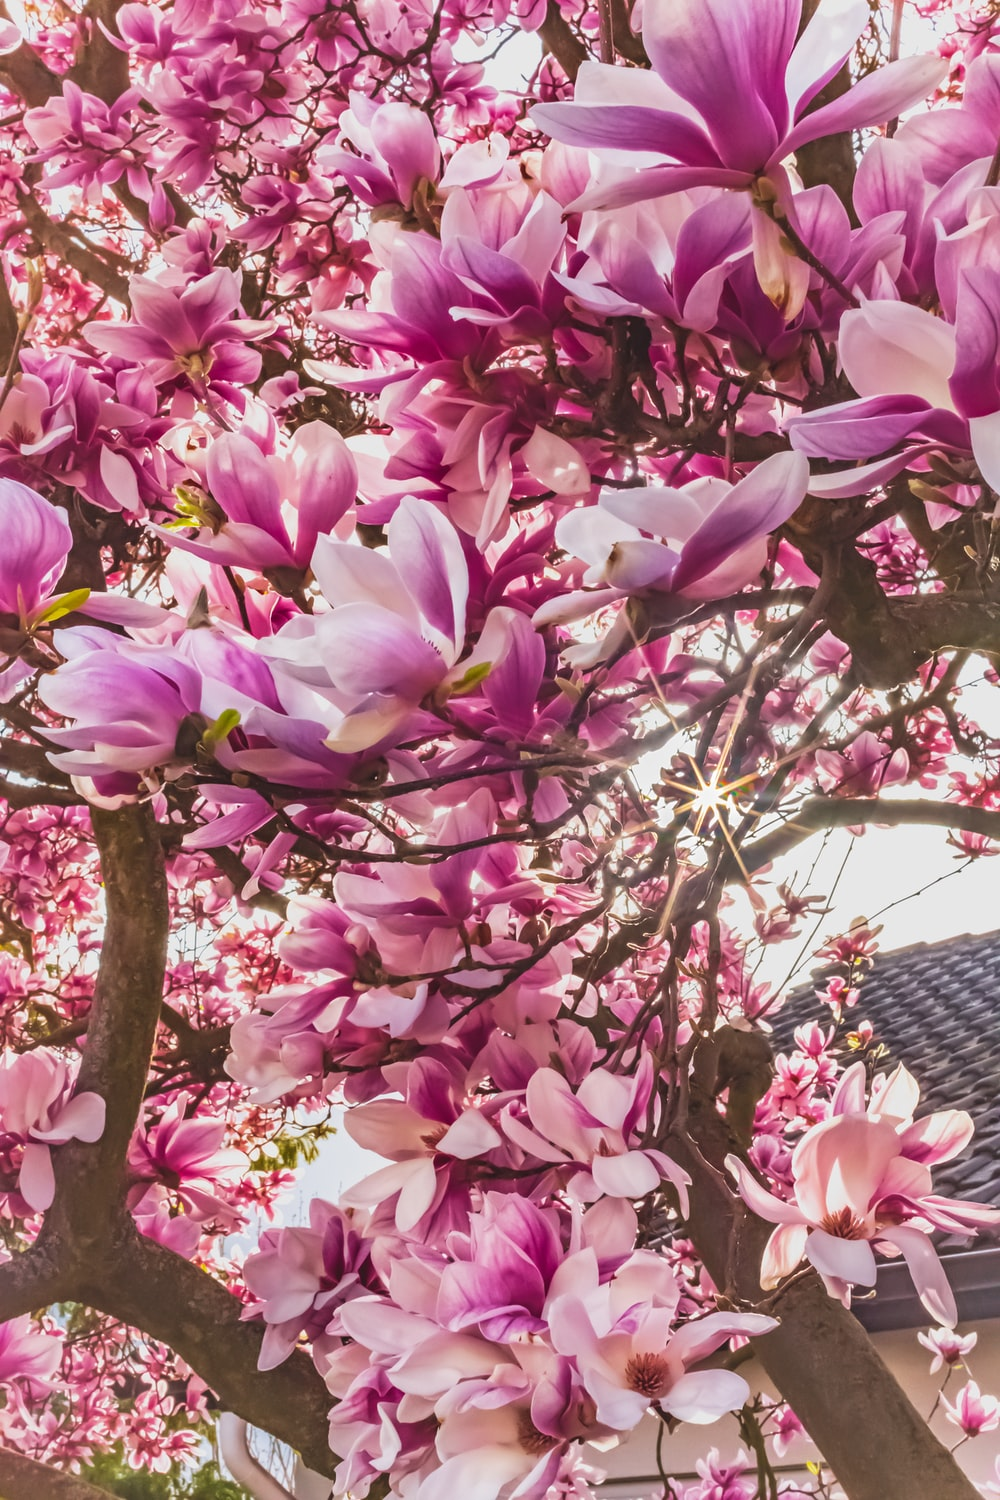 pink flowers on tree branch